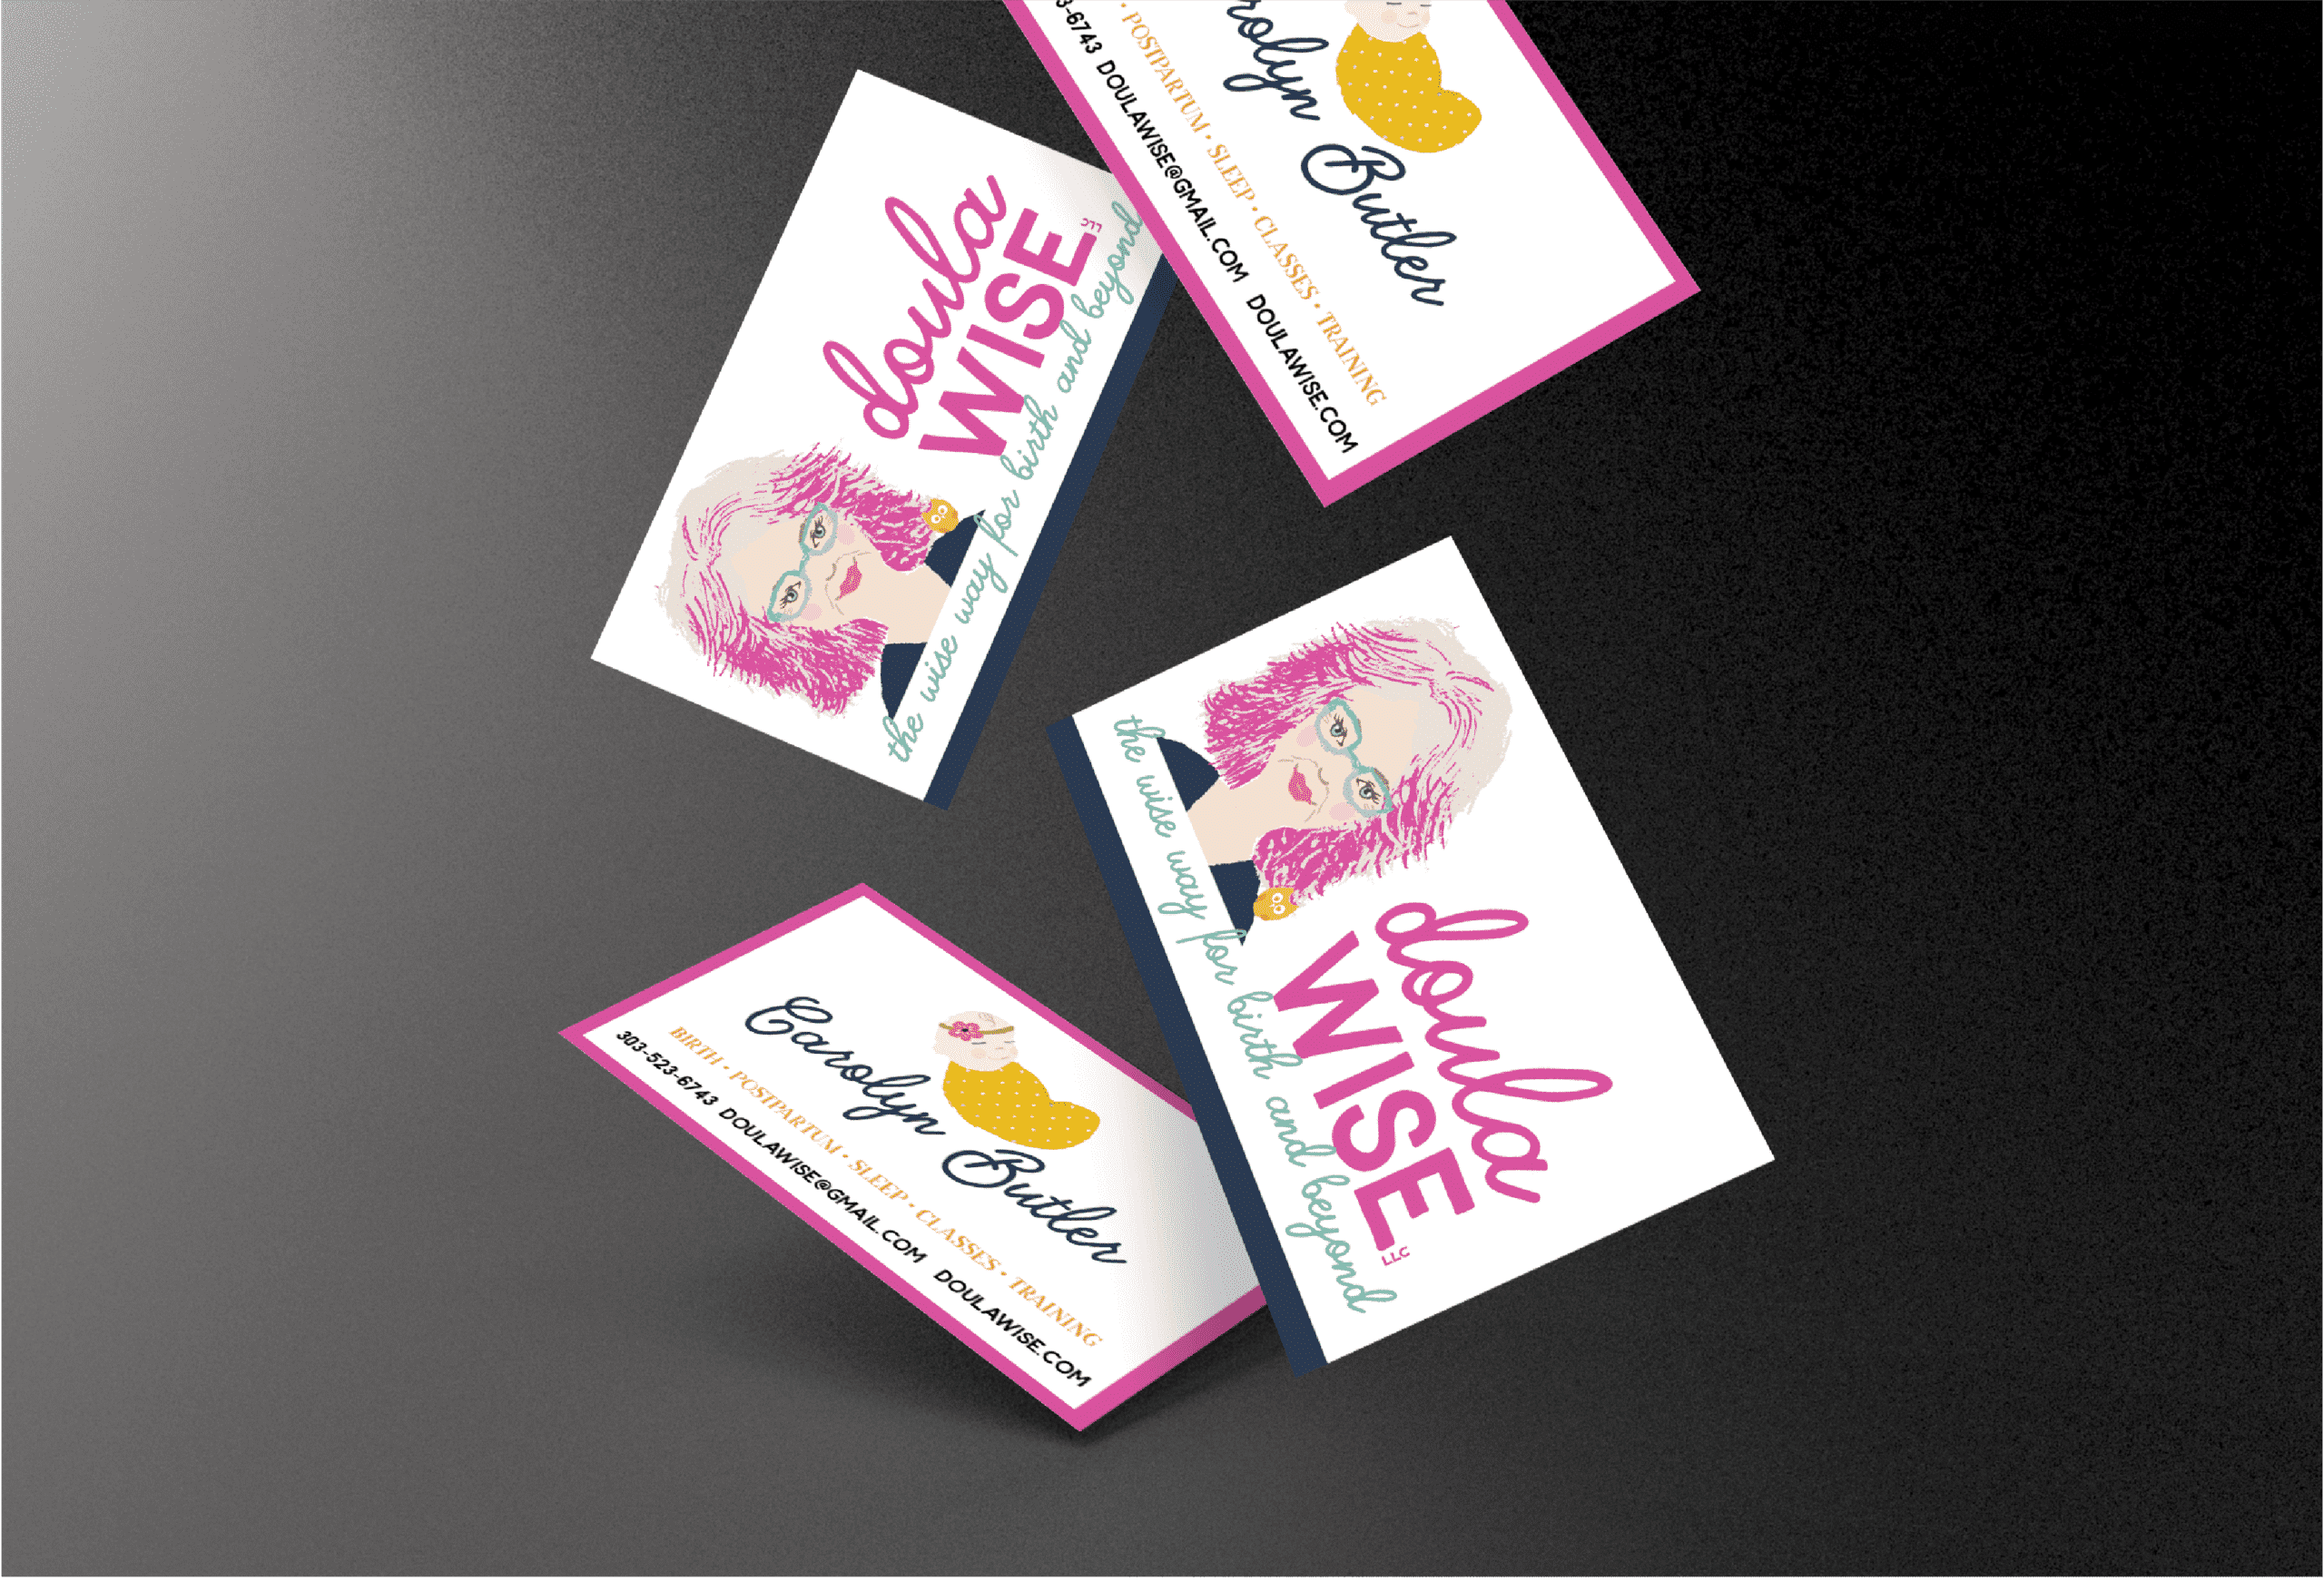 Portfolio | Business Card Design for Doula Wise Cards falling from top of image